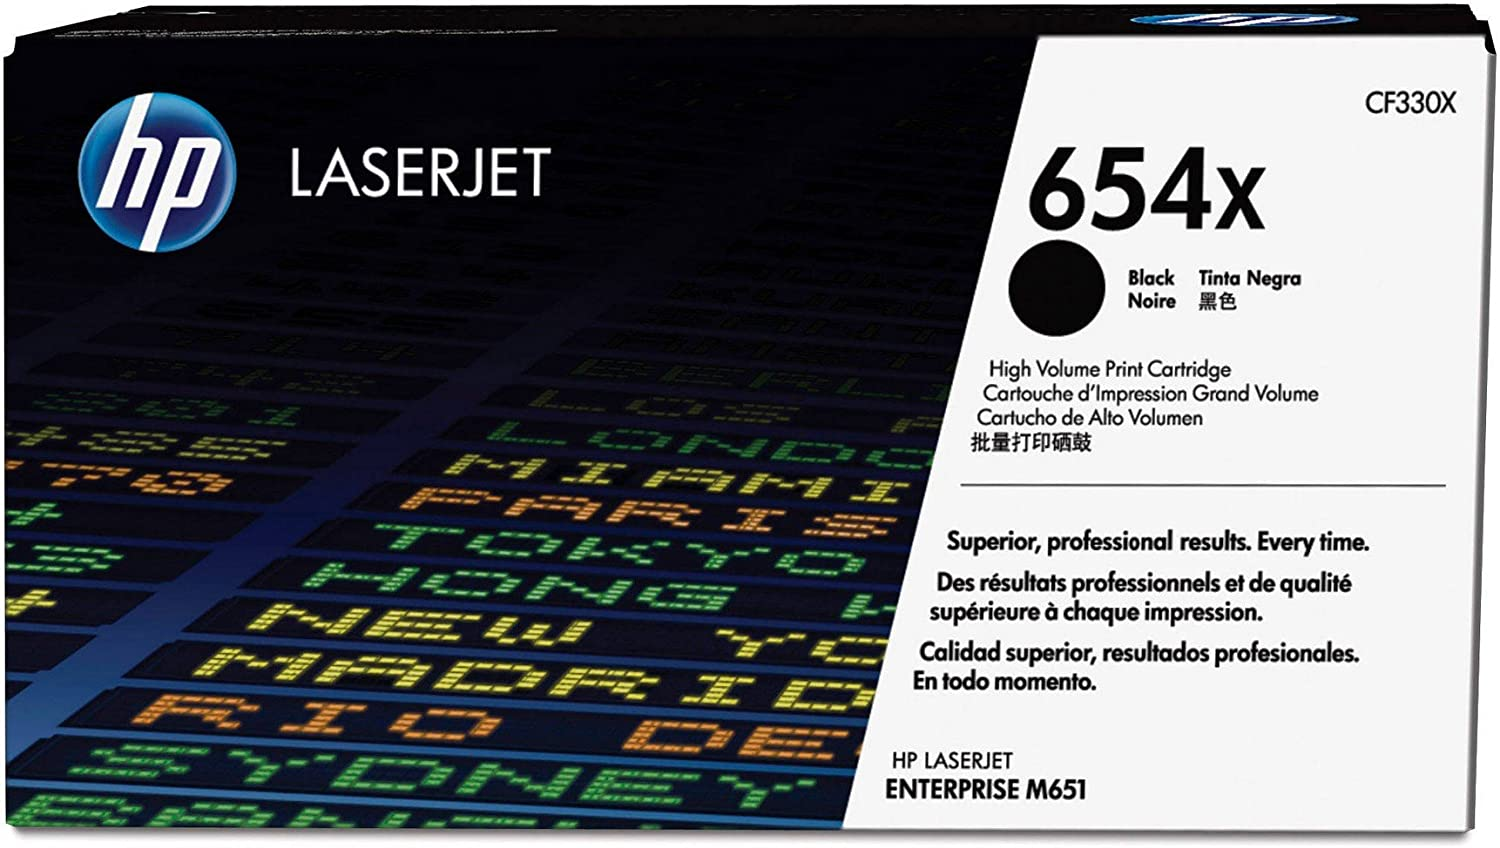 HP 654X | CF330X | Toner Cartridge | Black | High Yield